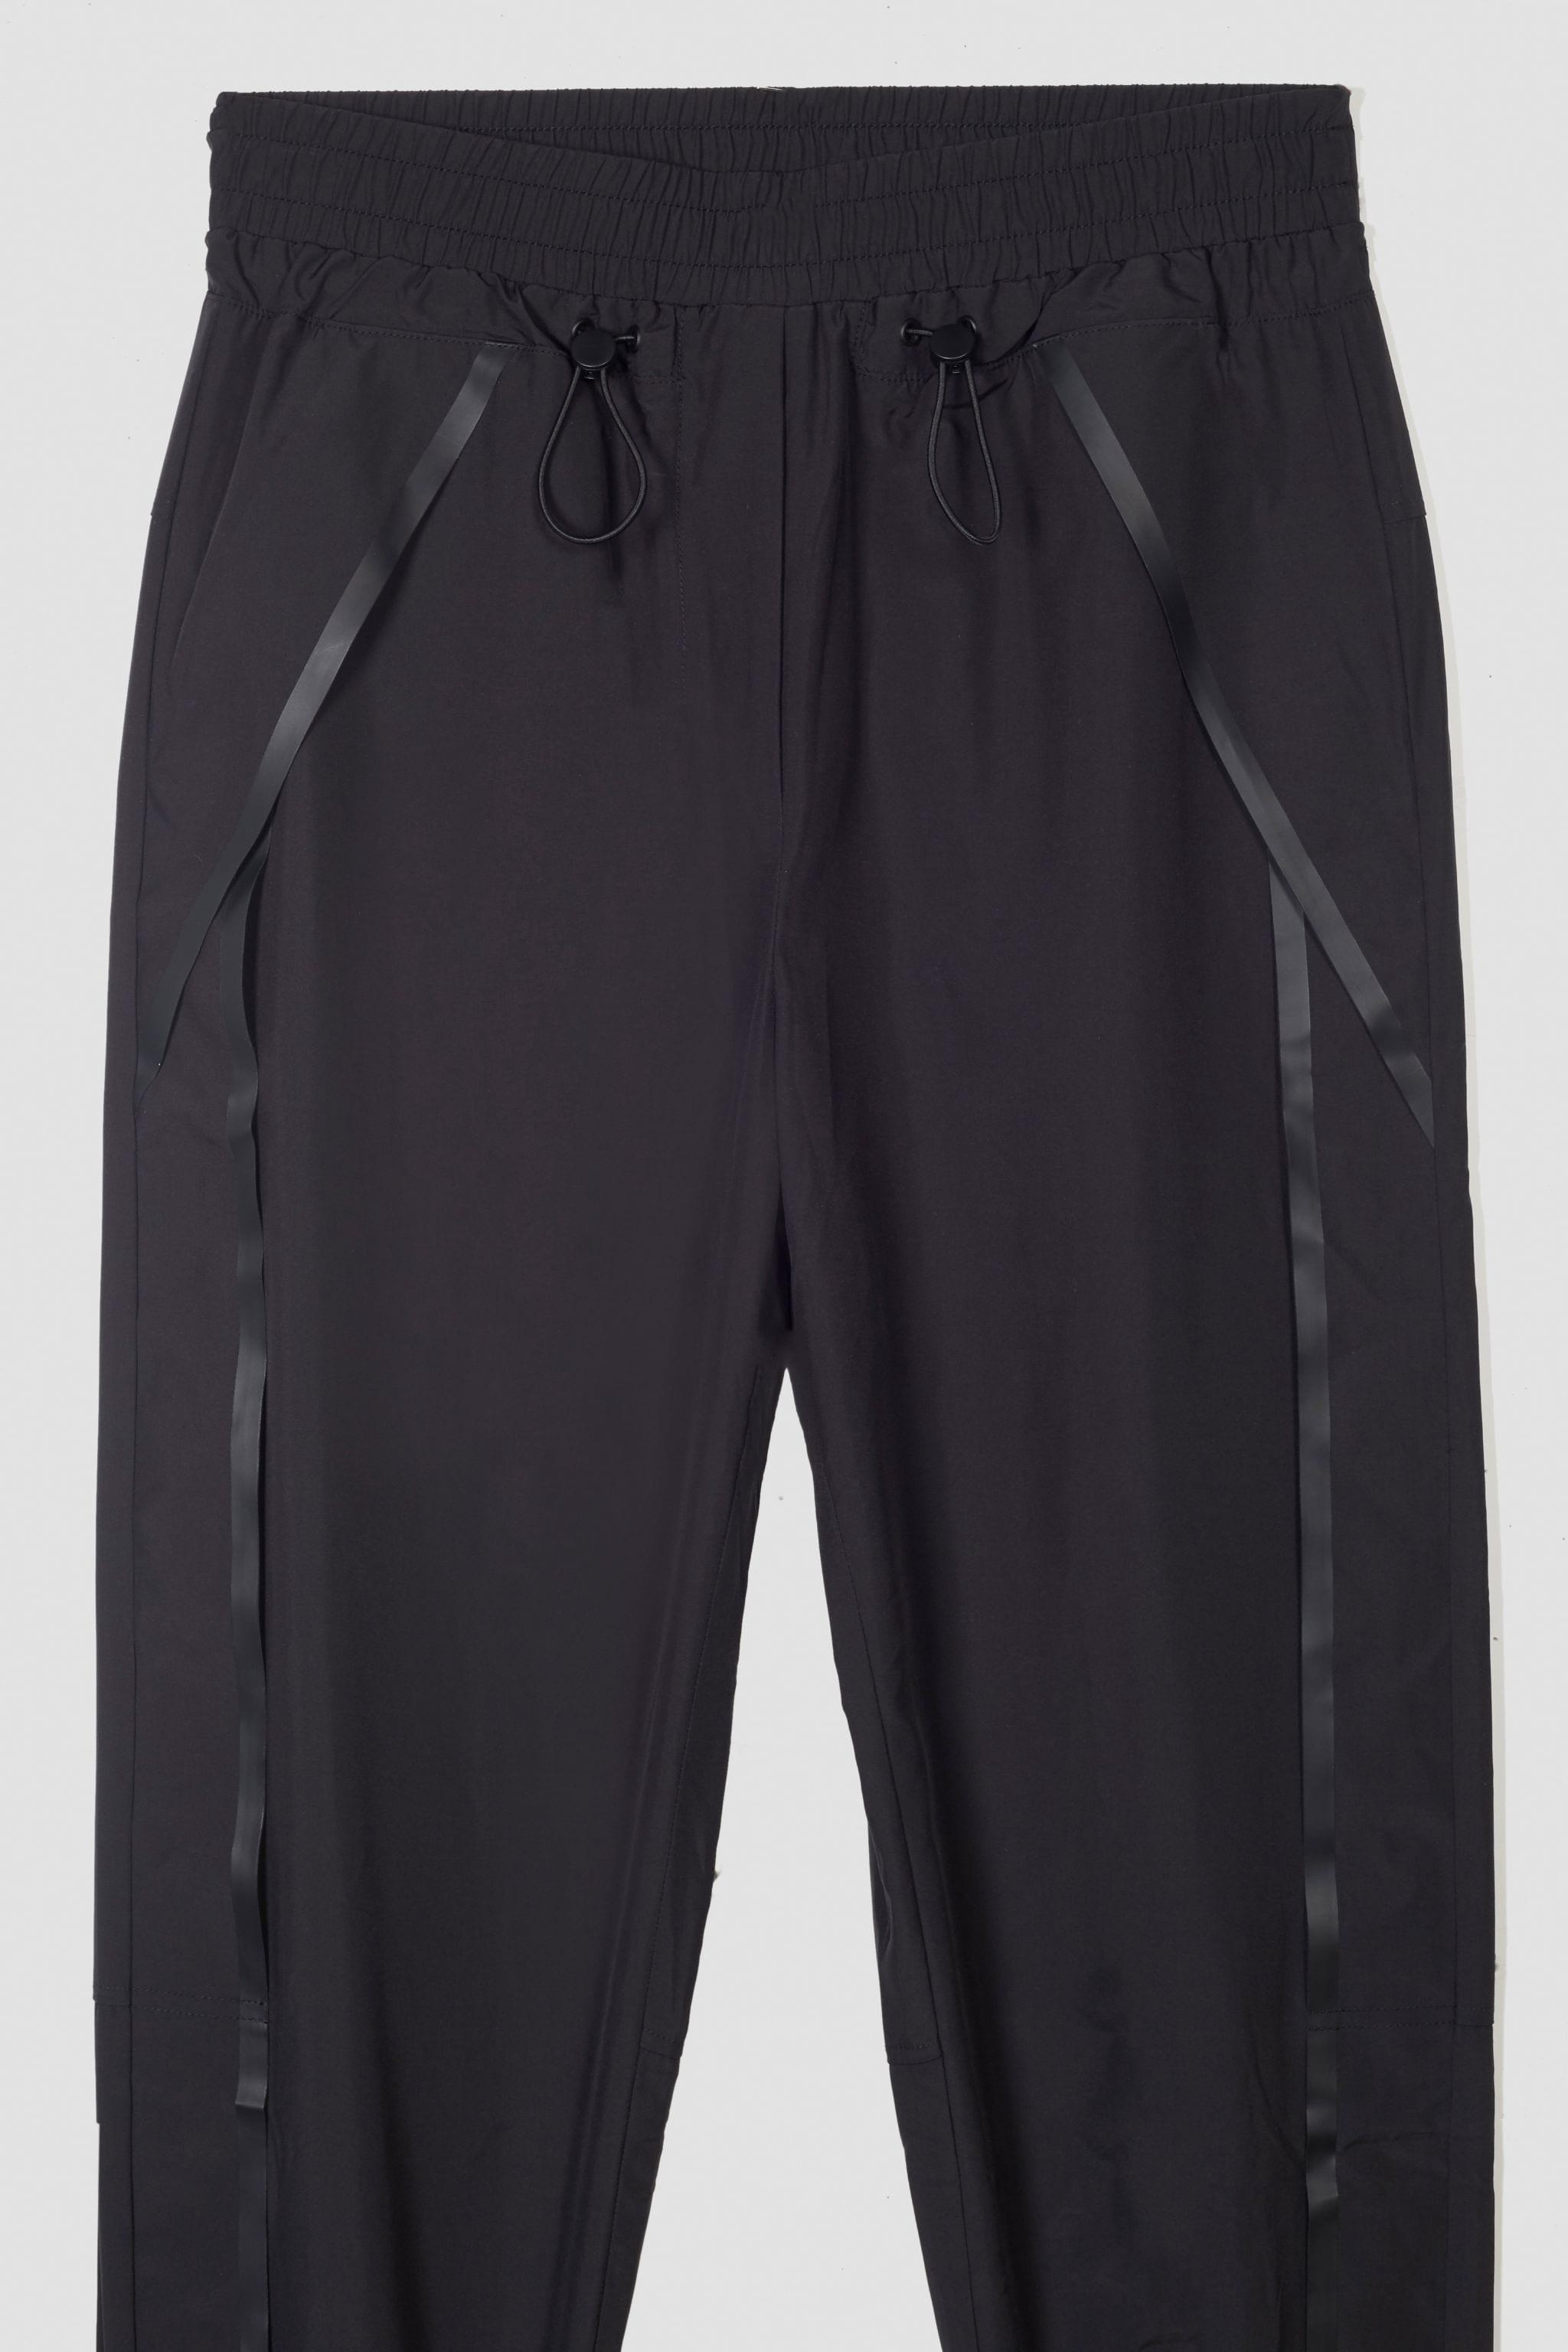 The Track-Less Pant 6